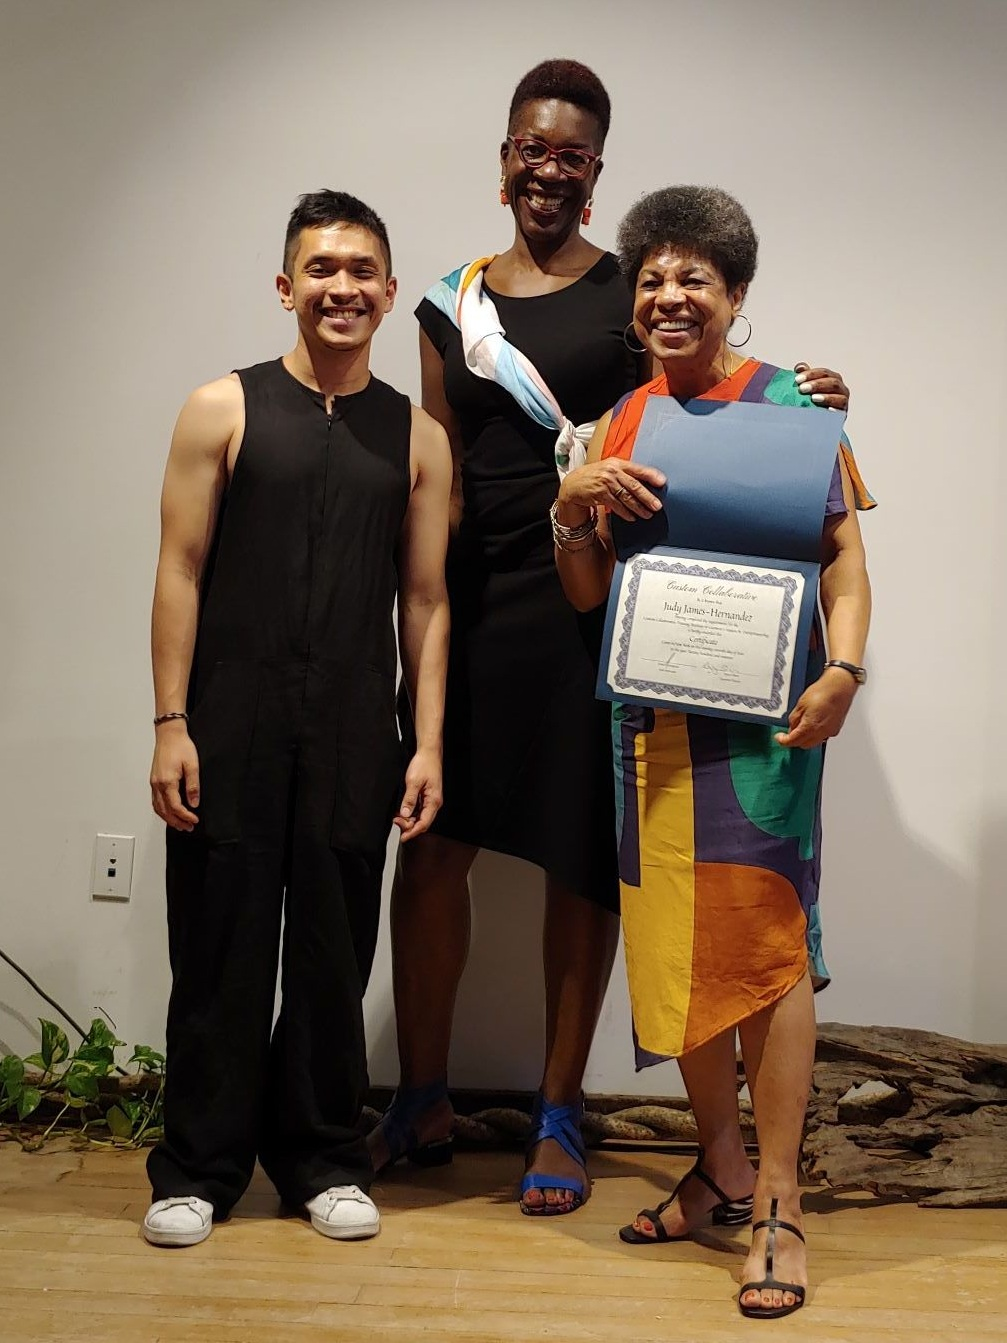 Graduate Judy James-Hernandez receives her certificate in garment construction and entrepreneurship from Lead Instructor Daniel Concepcion and Executive Director Ngozi Okaro. Training Institute Cohort 6 Graduation Celebration & Fashion Show June 27, 2019 at Mara Hoffman.